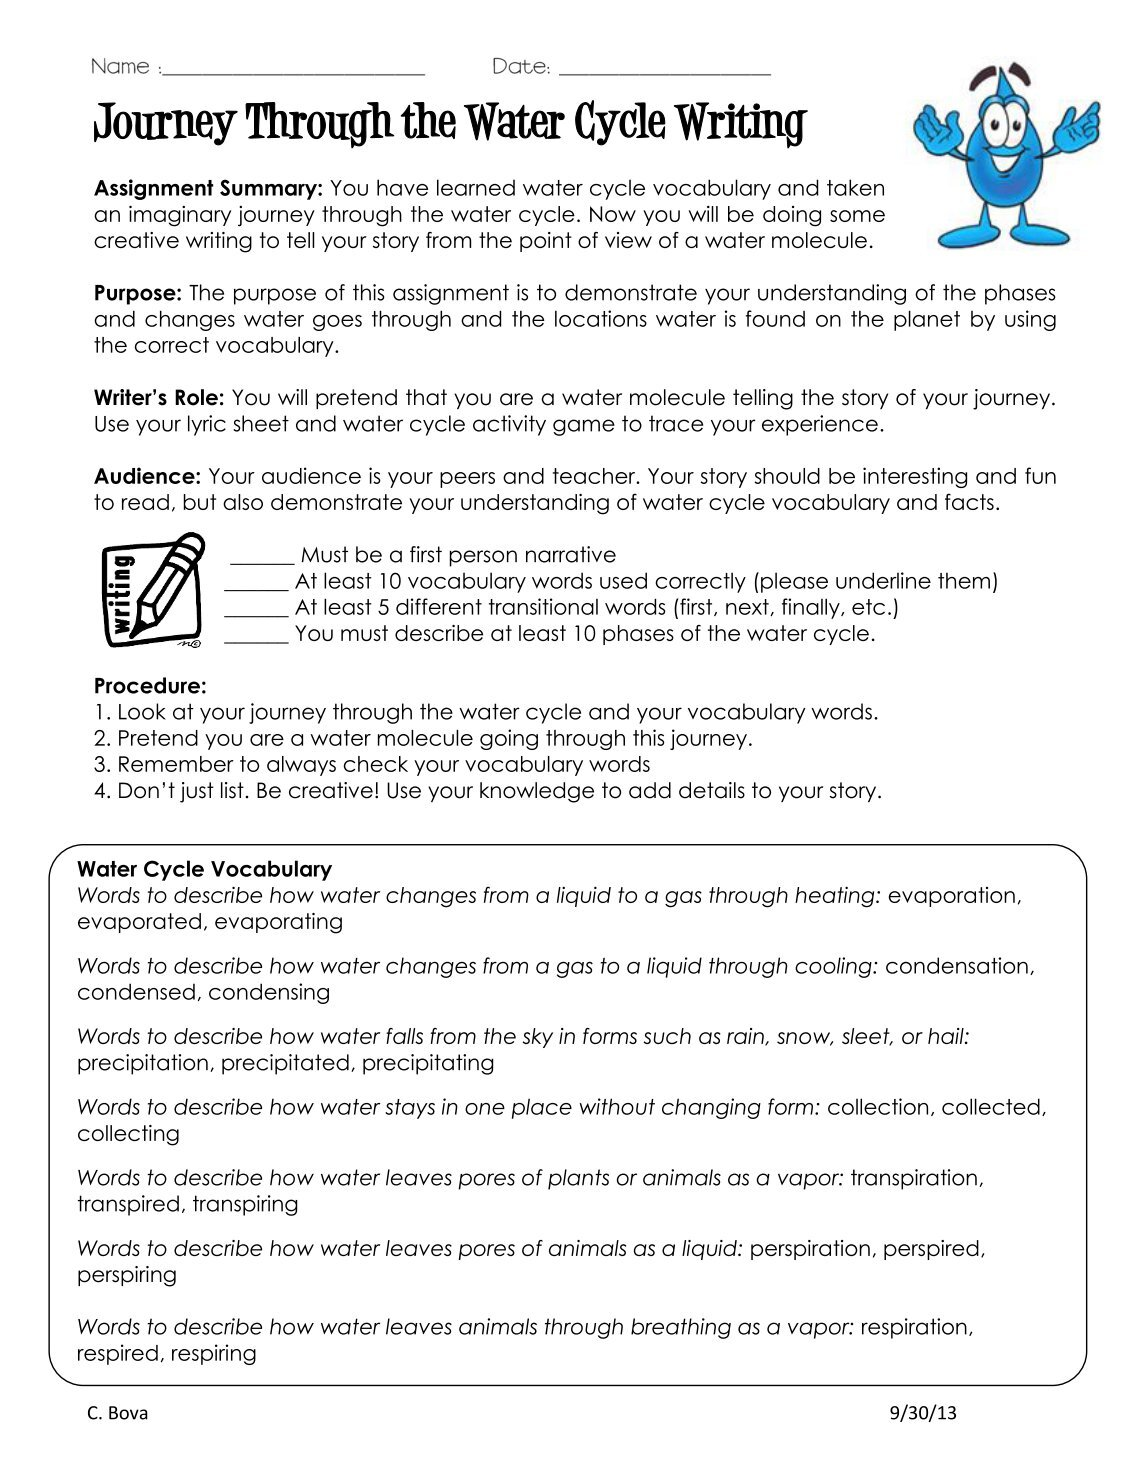 Worksheets Water Cycle Worksheet High School water cycle worksheet high school the free printable best essay for on journey through essaypdf mr bova with high